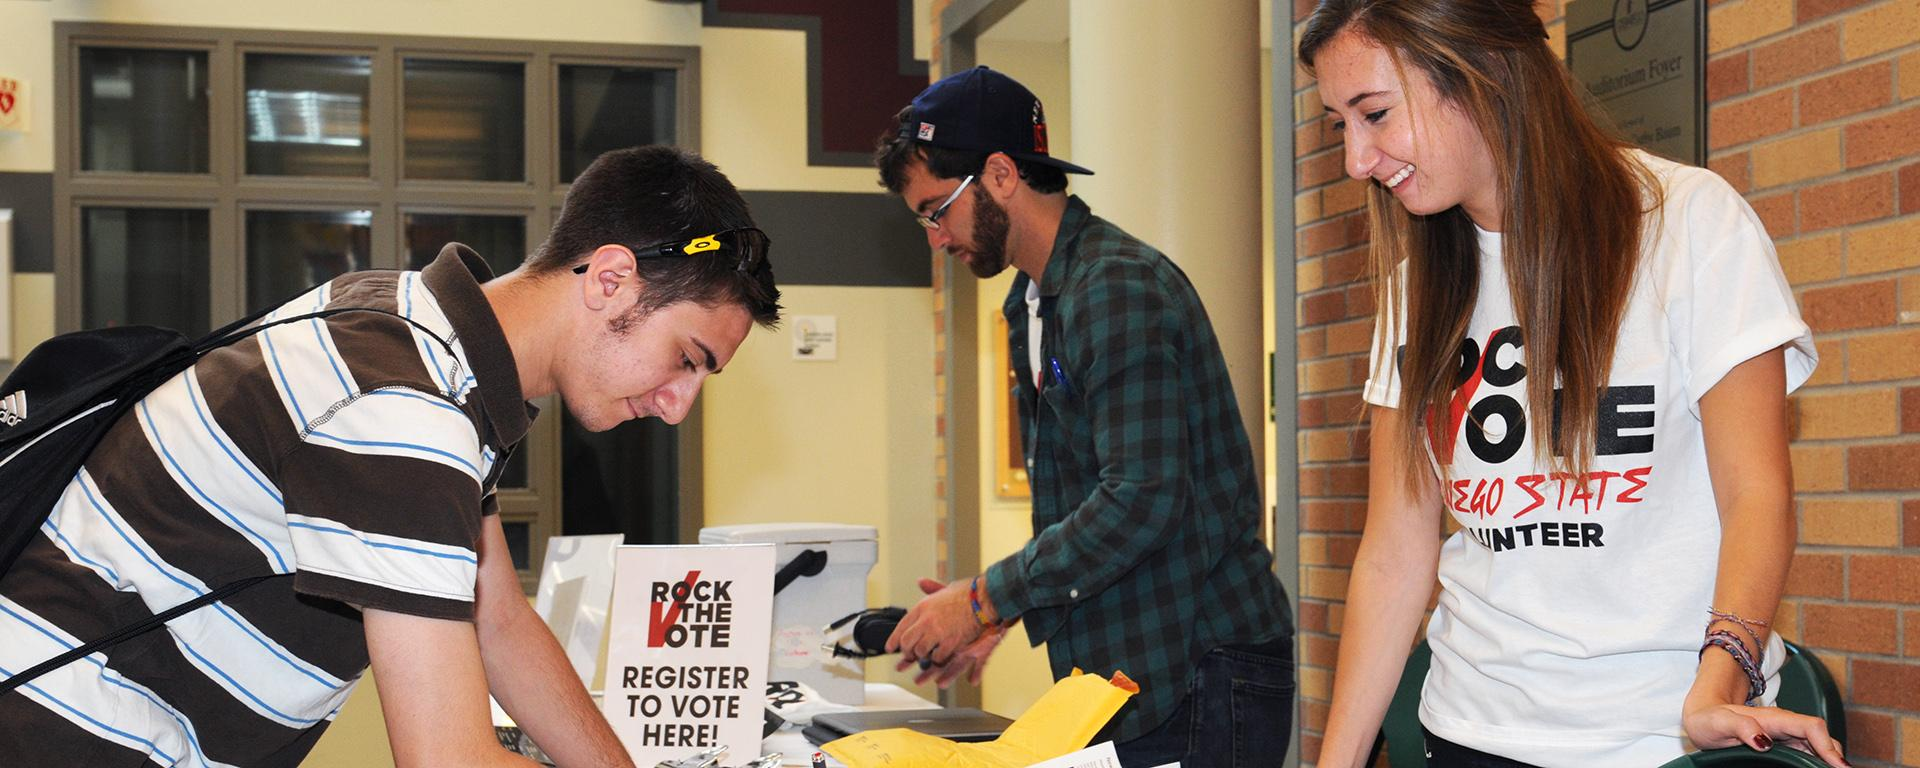 Students registering to vote